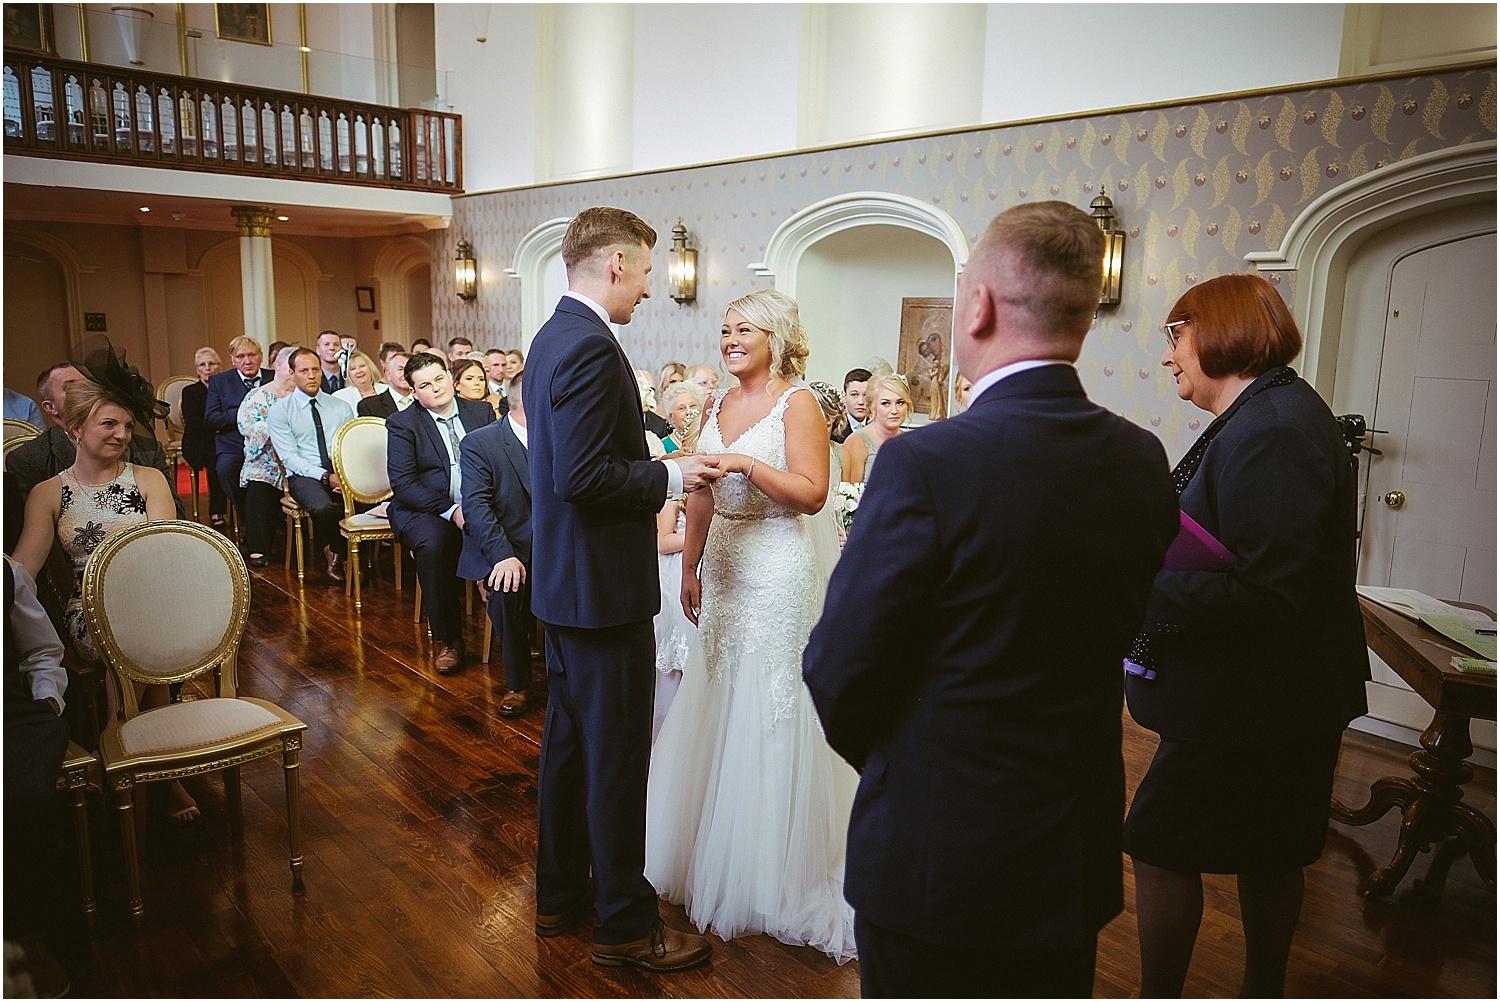 Lartington Hall weddings by www.2tonephotography.co.uk 045.jpg